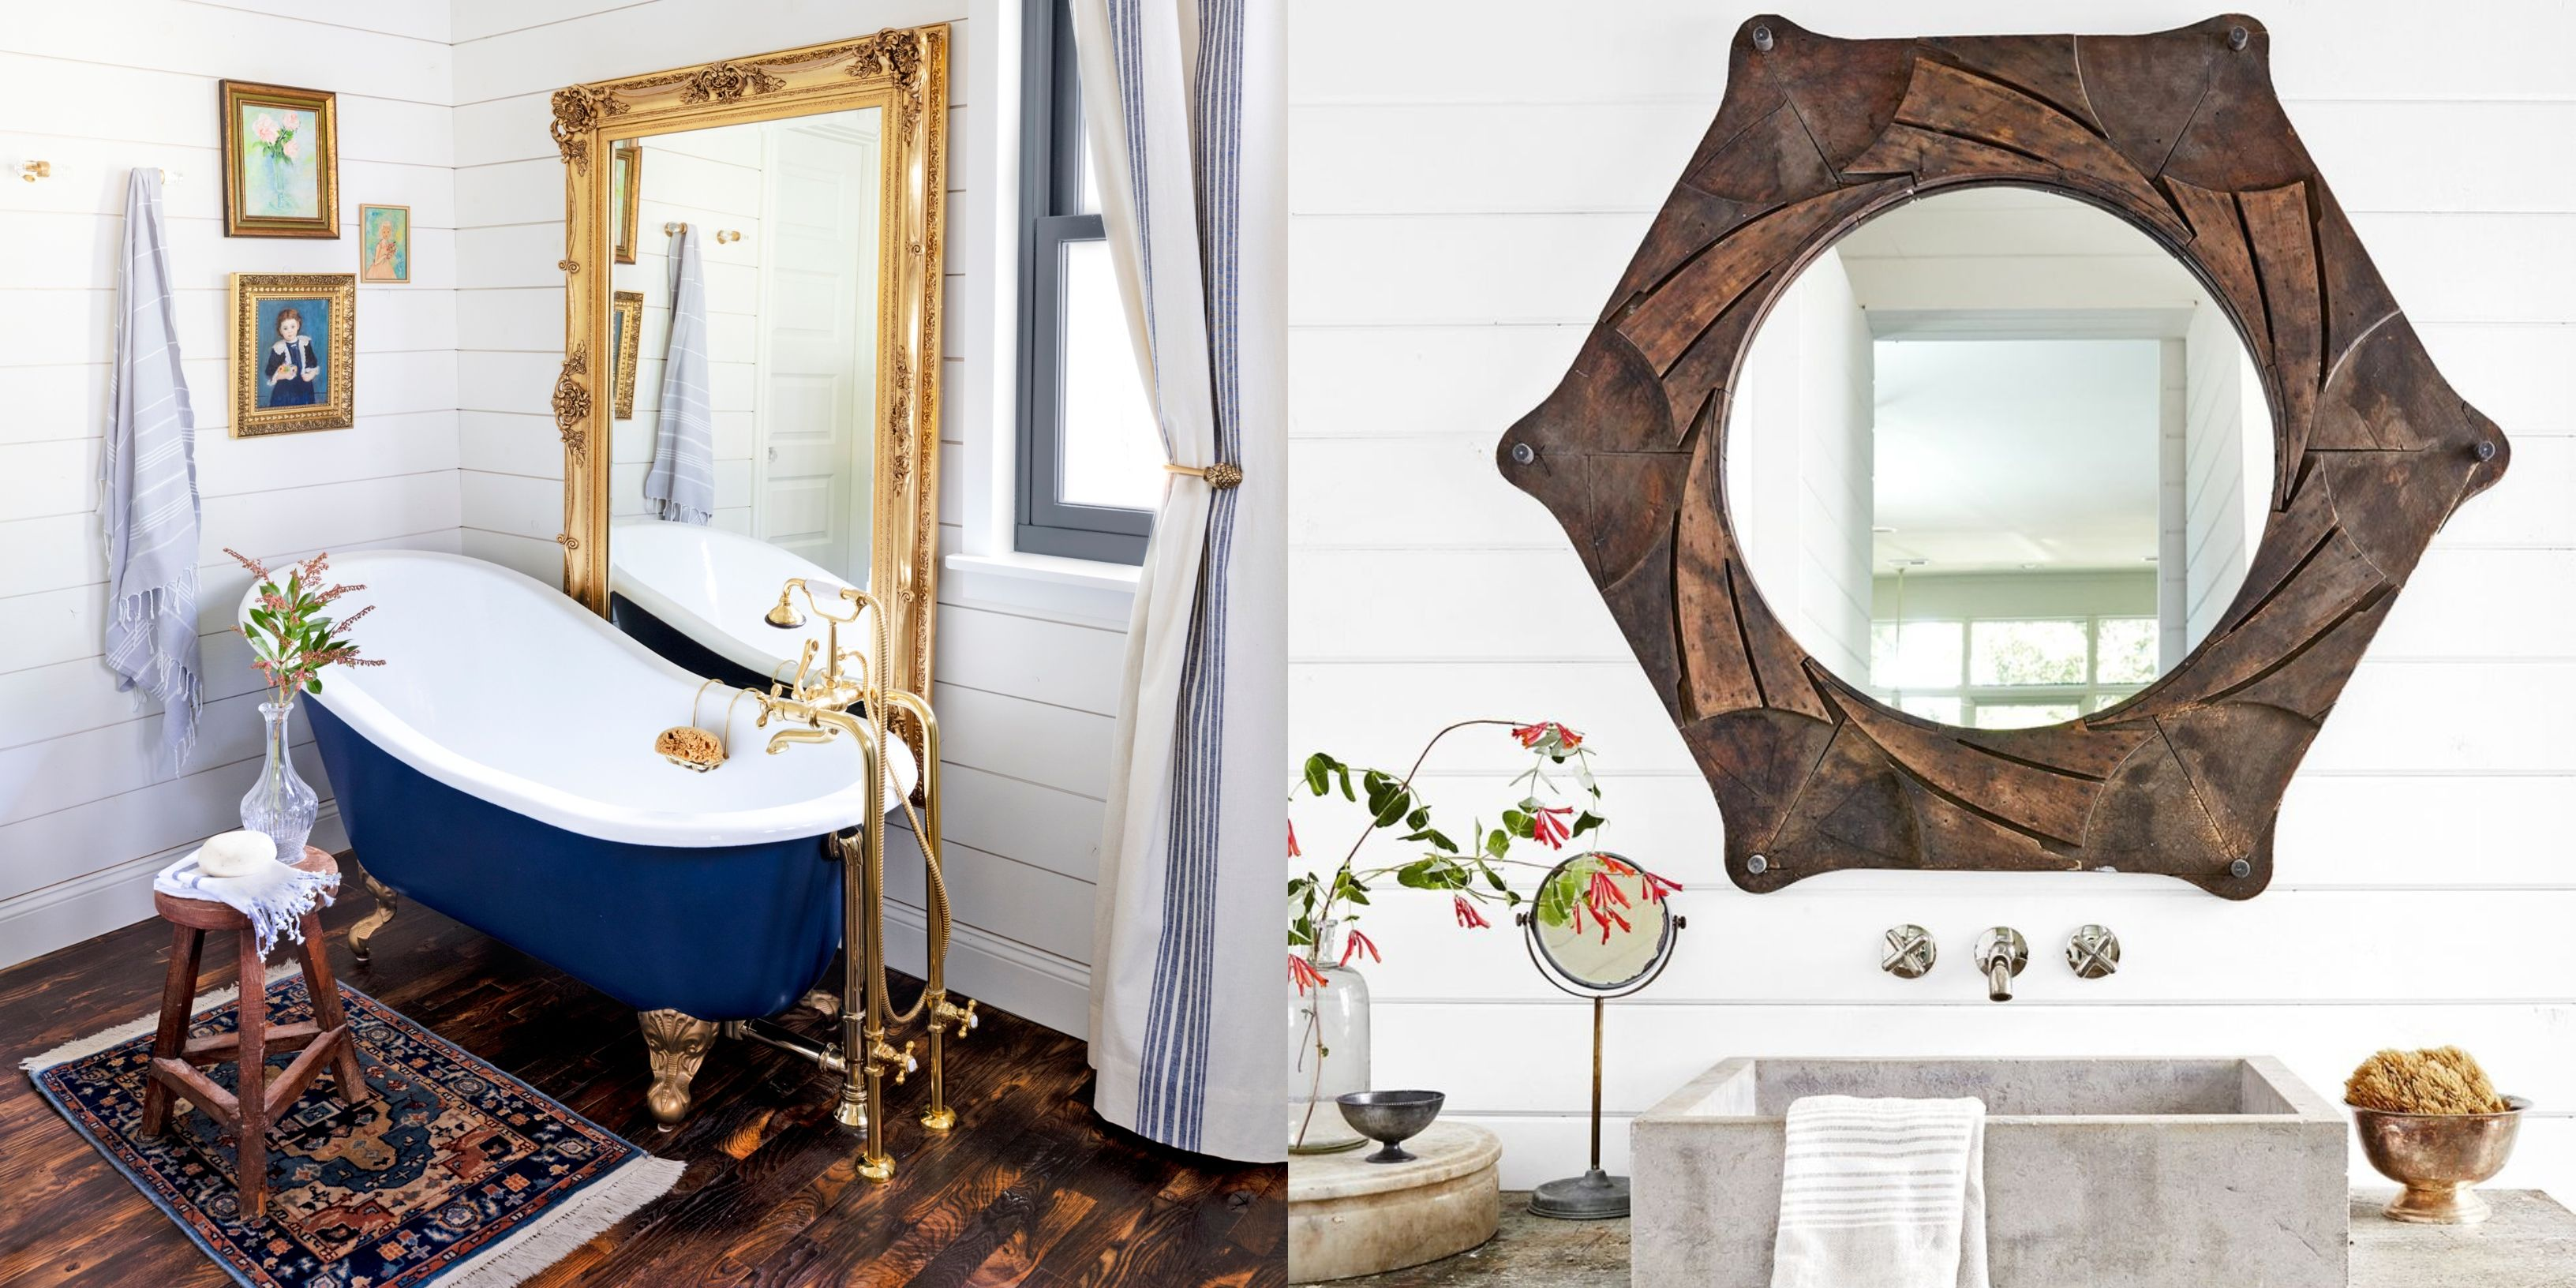 These Bathroom Decorating Ideas Will Inspire a Total Makeover